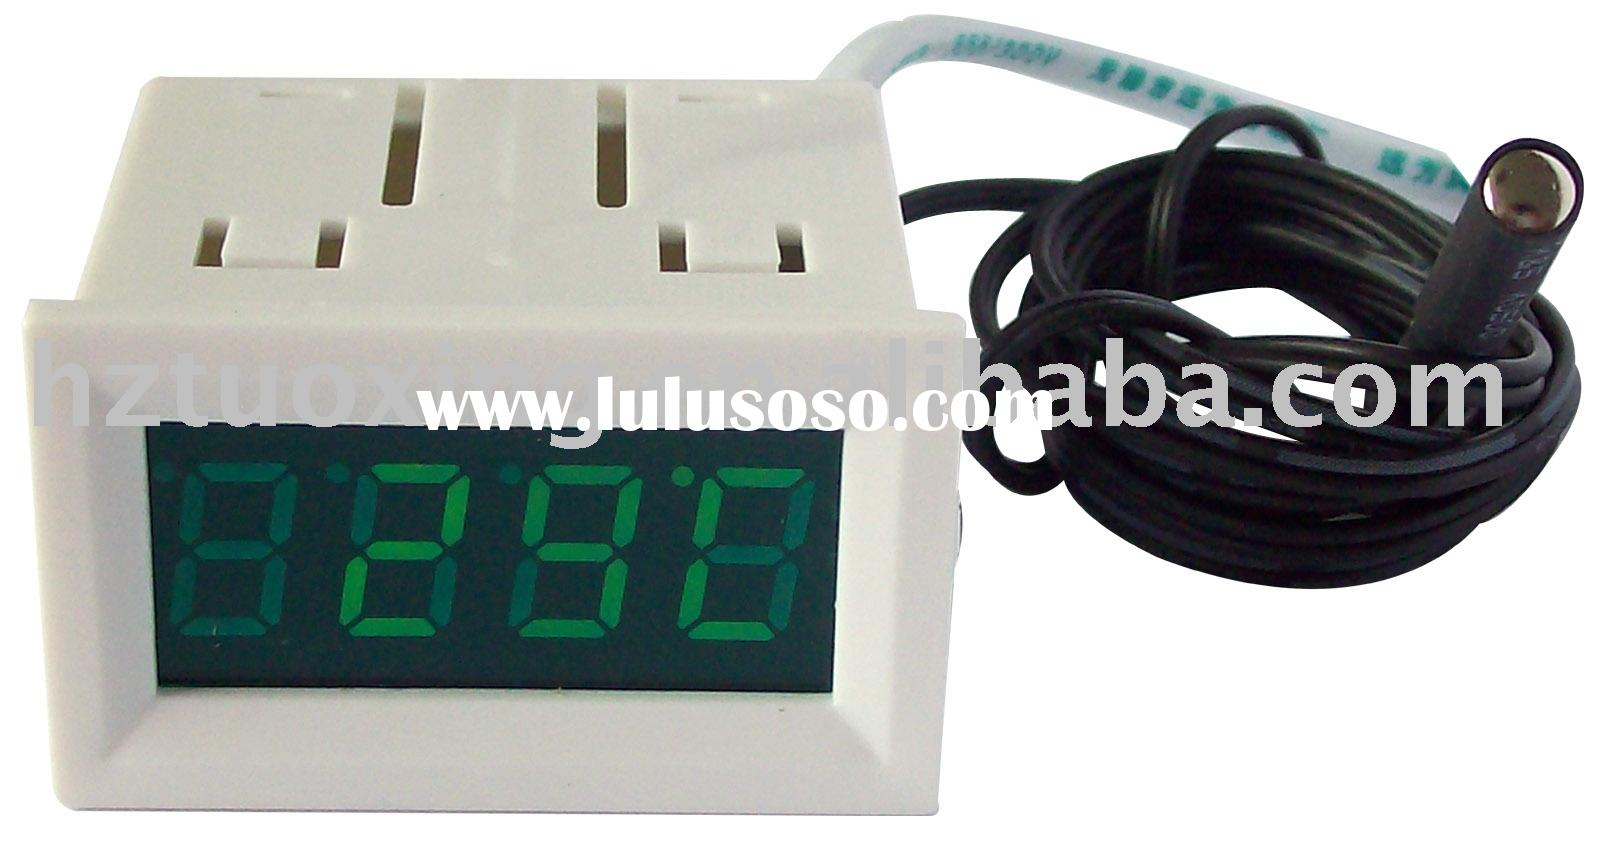 0.4 inch 2 digit green led digital thermometer